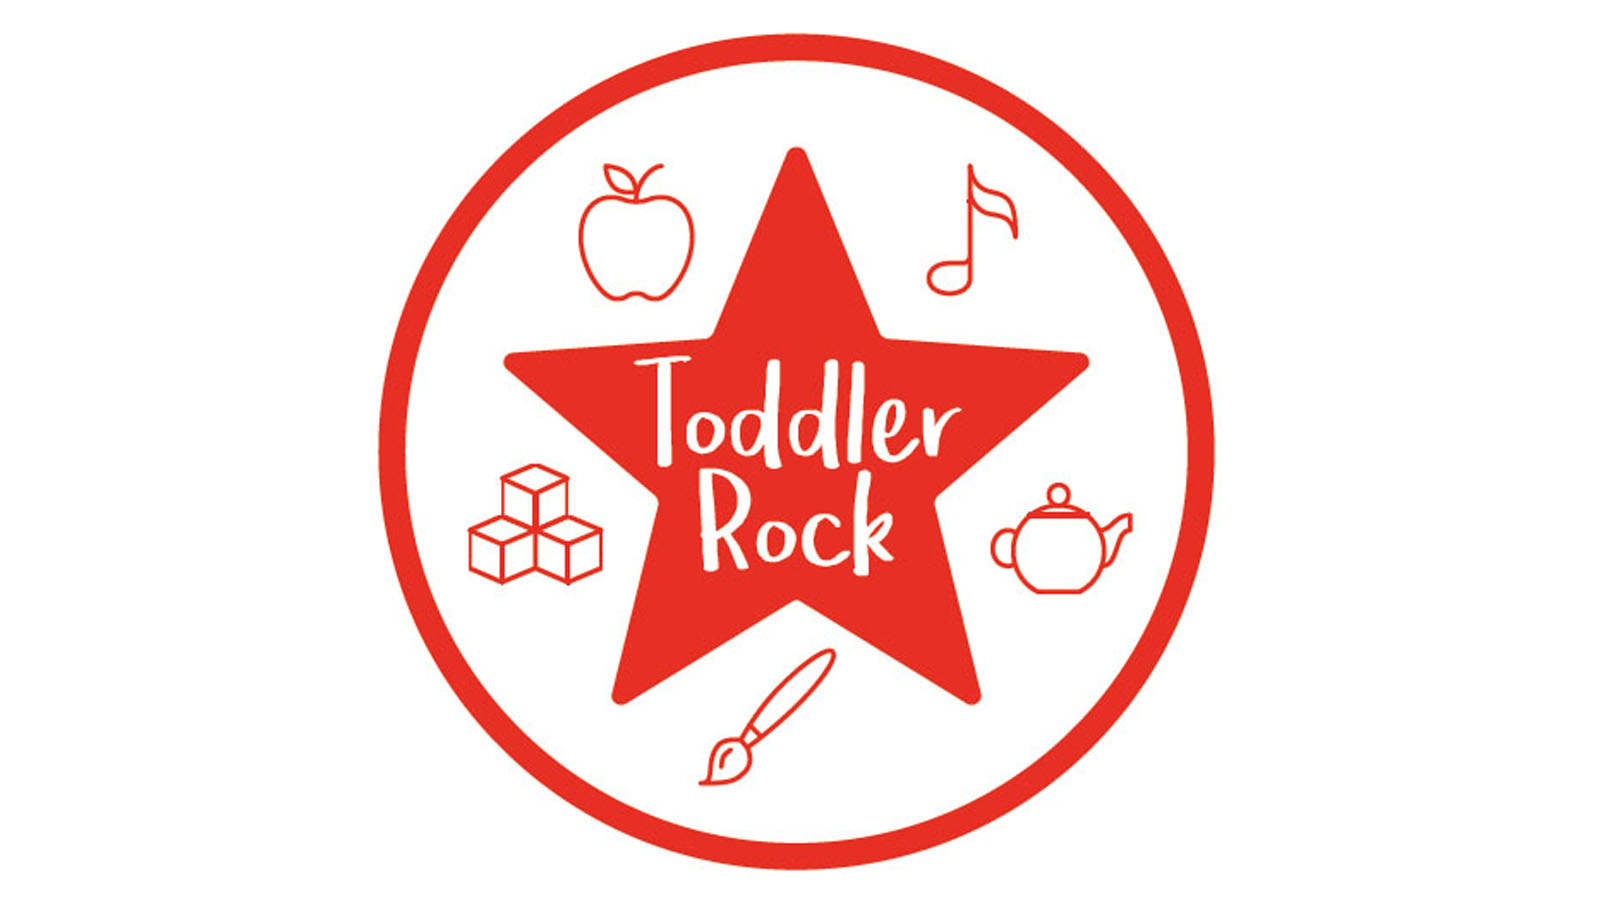 toddler Rock